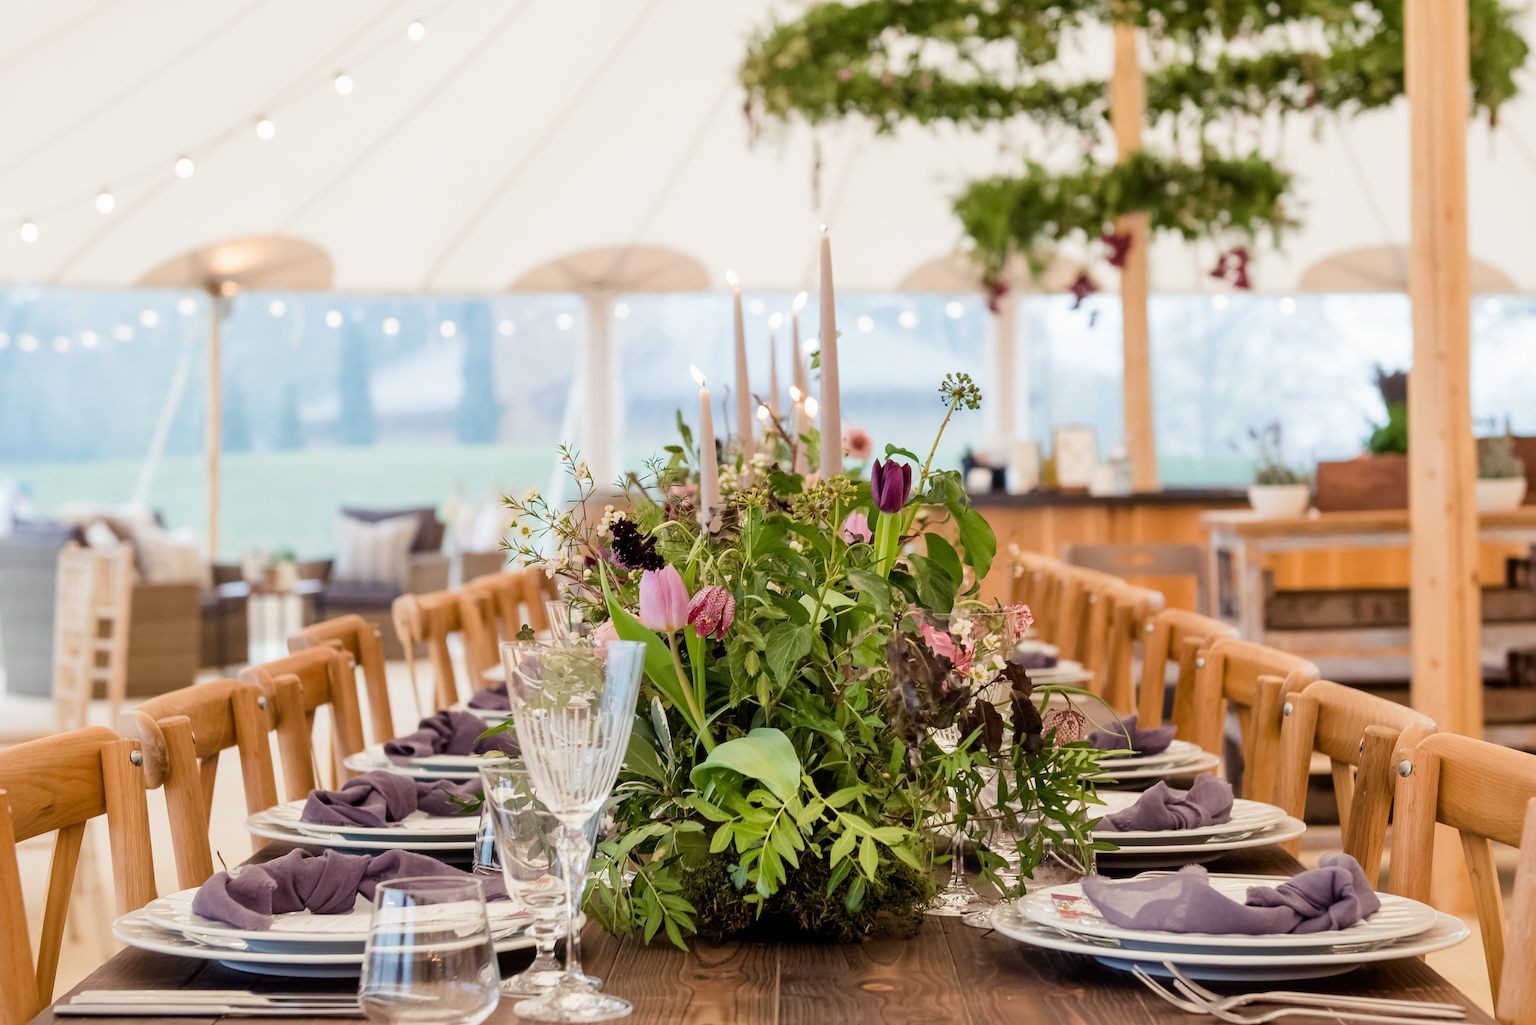 Whitehouse Event Crockery for the PapaKata Open Weekend by Dominic Wright Photography